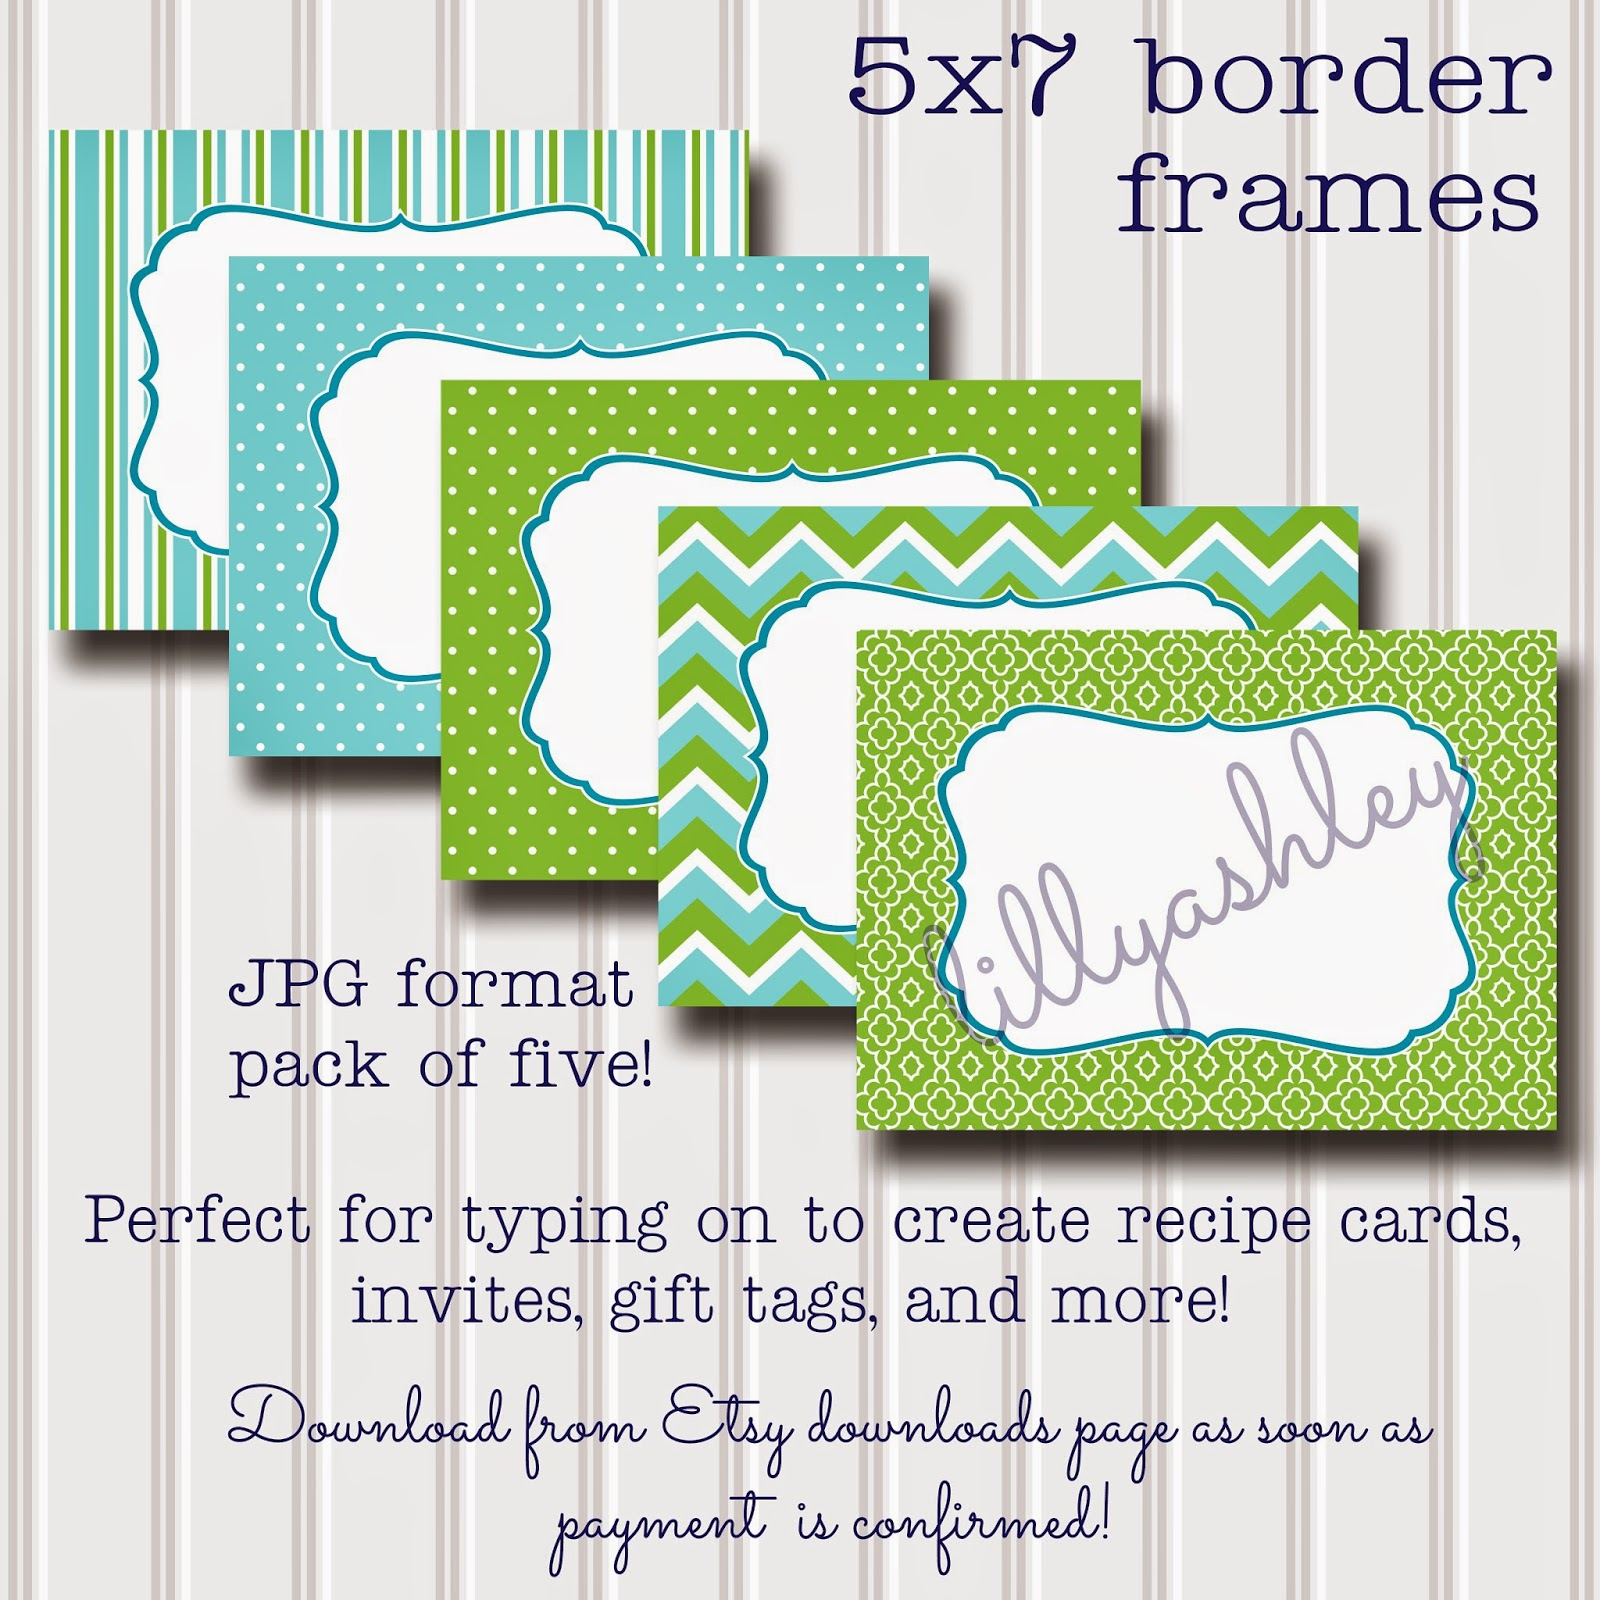 https://www.etsy.com/listing/223658789/5x7-border-frame-cards-pack-of-5-jpg?ref=shop_home_feat_1